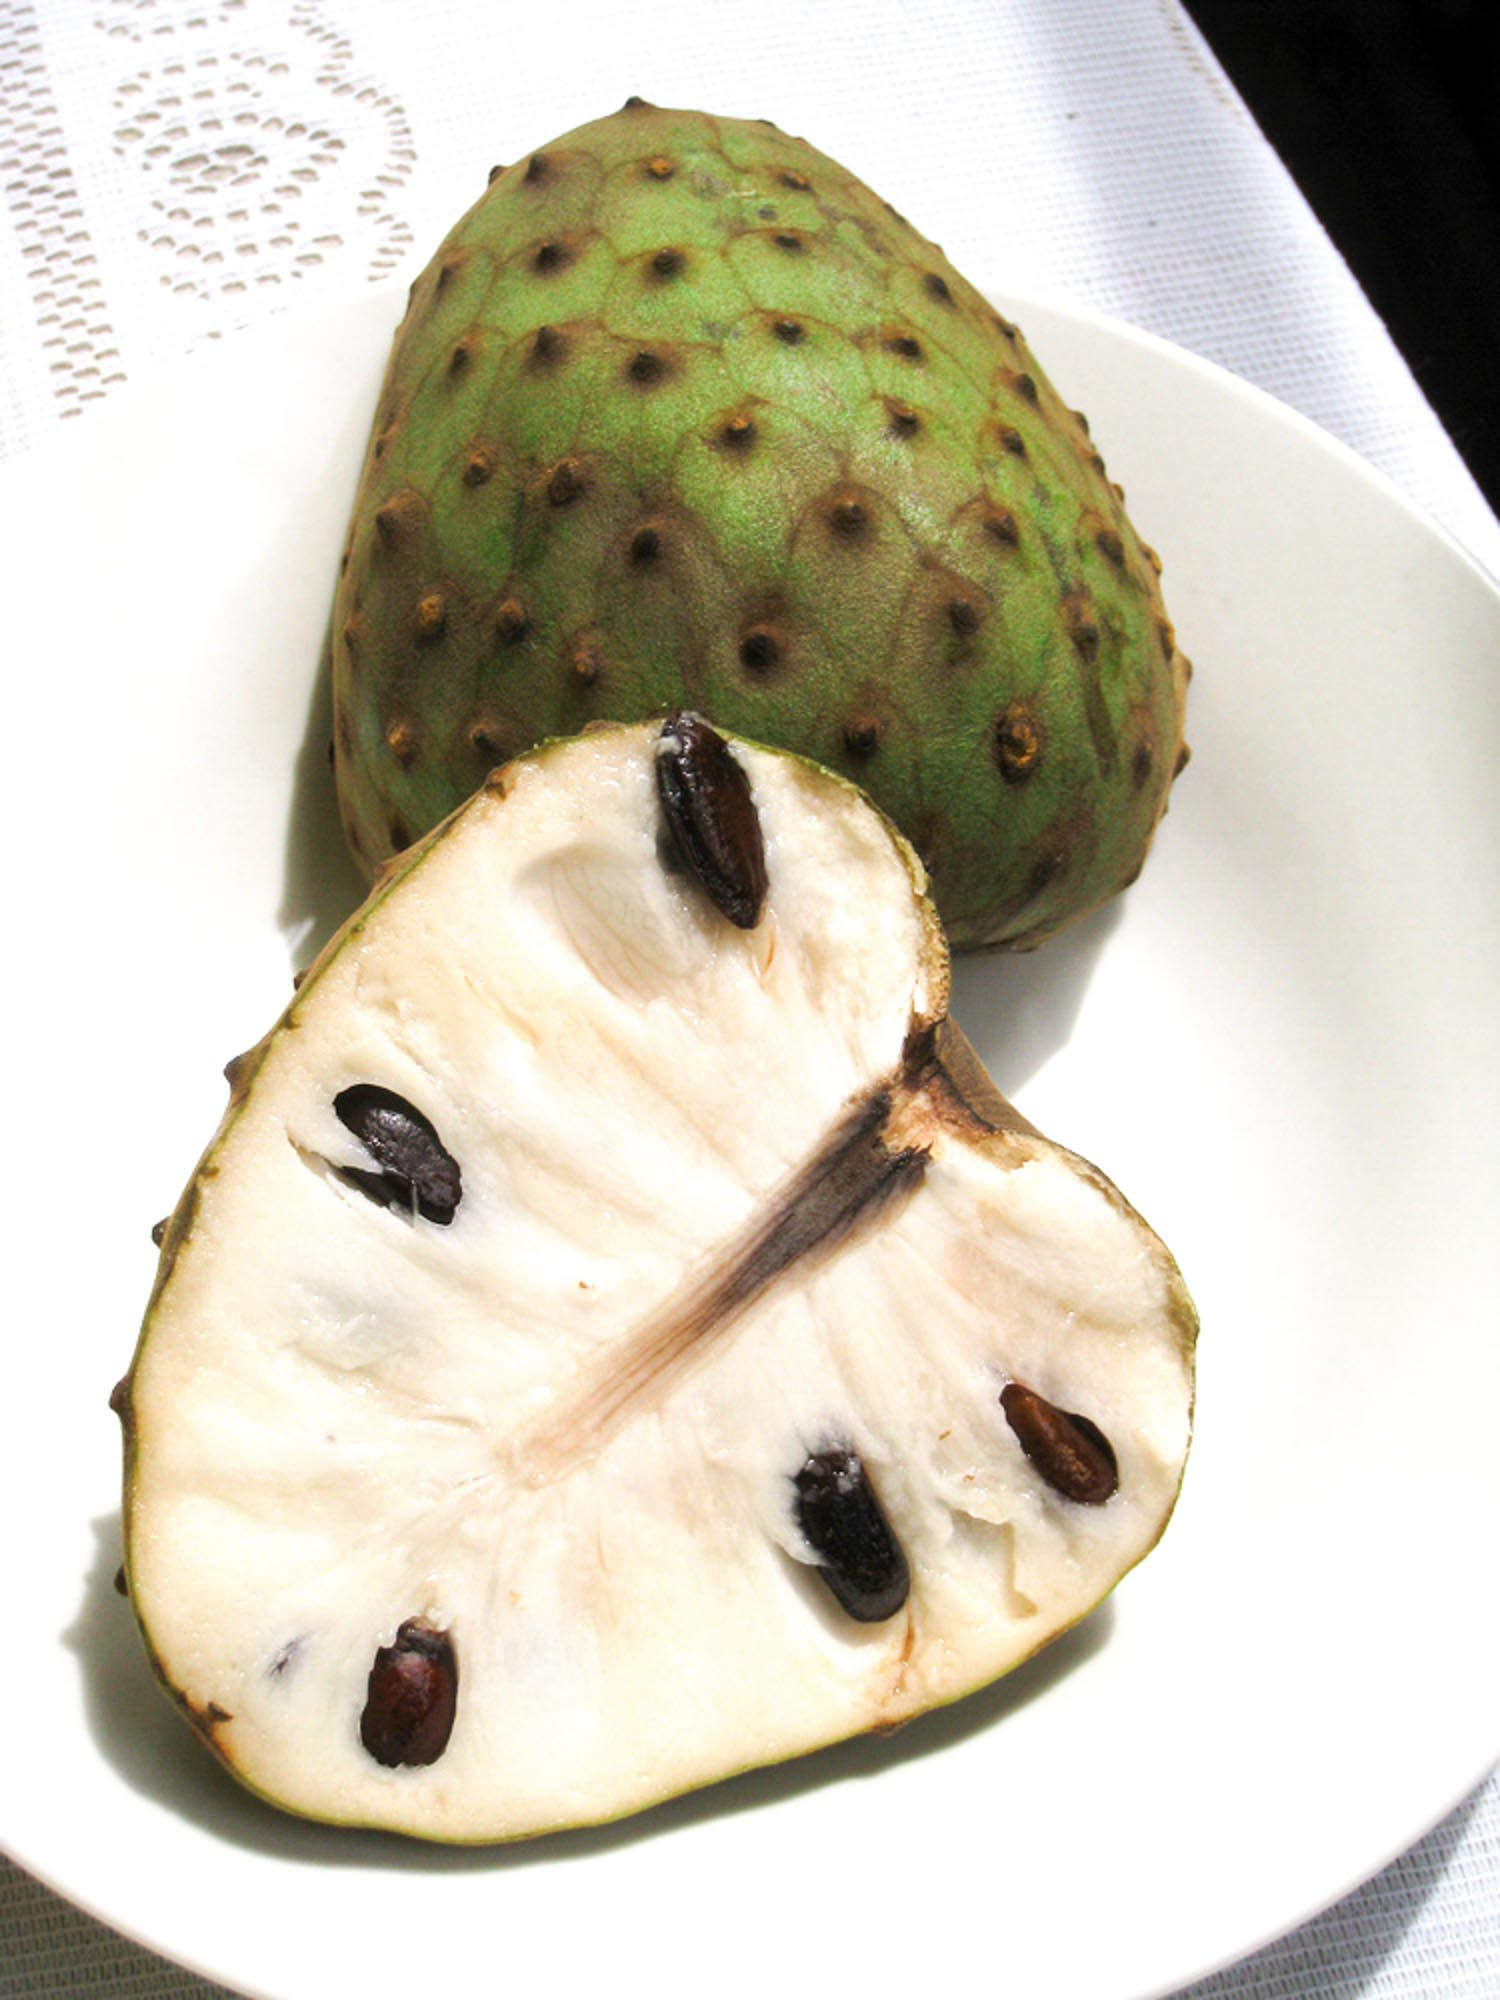 Cherimoya fruit in Hawaii on a white plate.